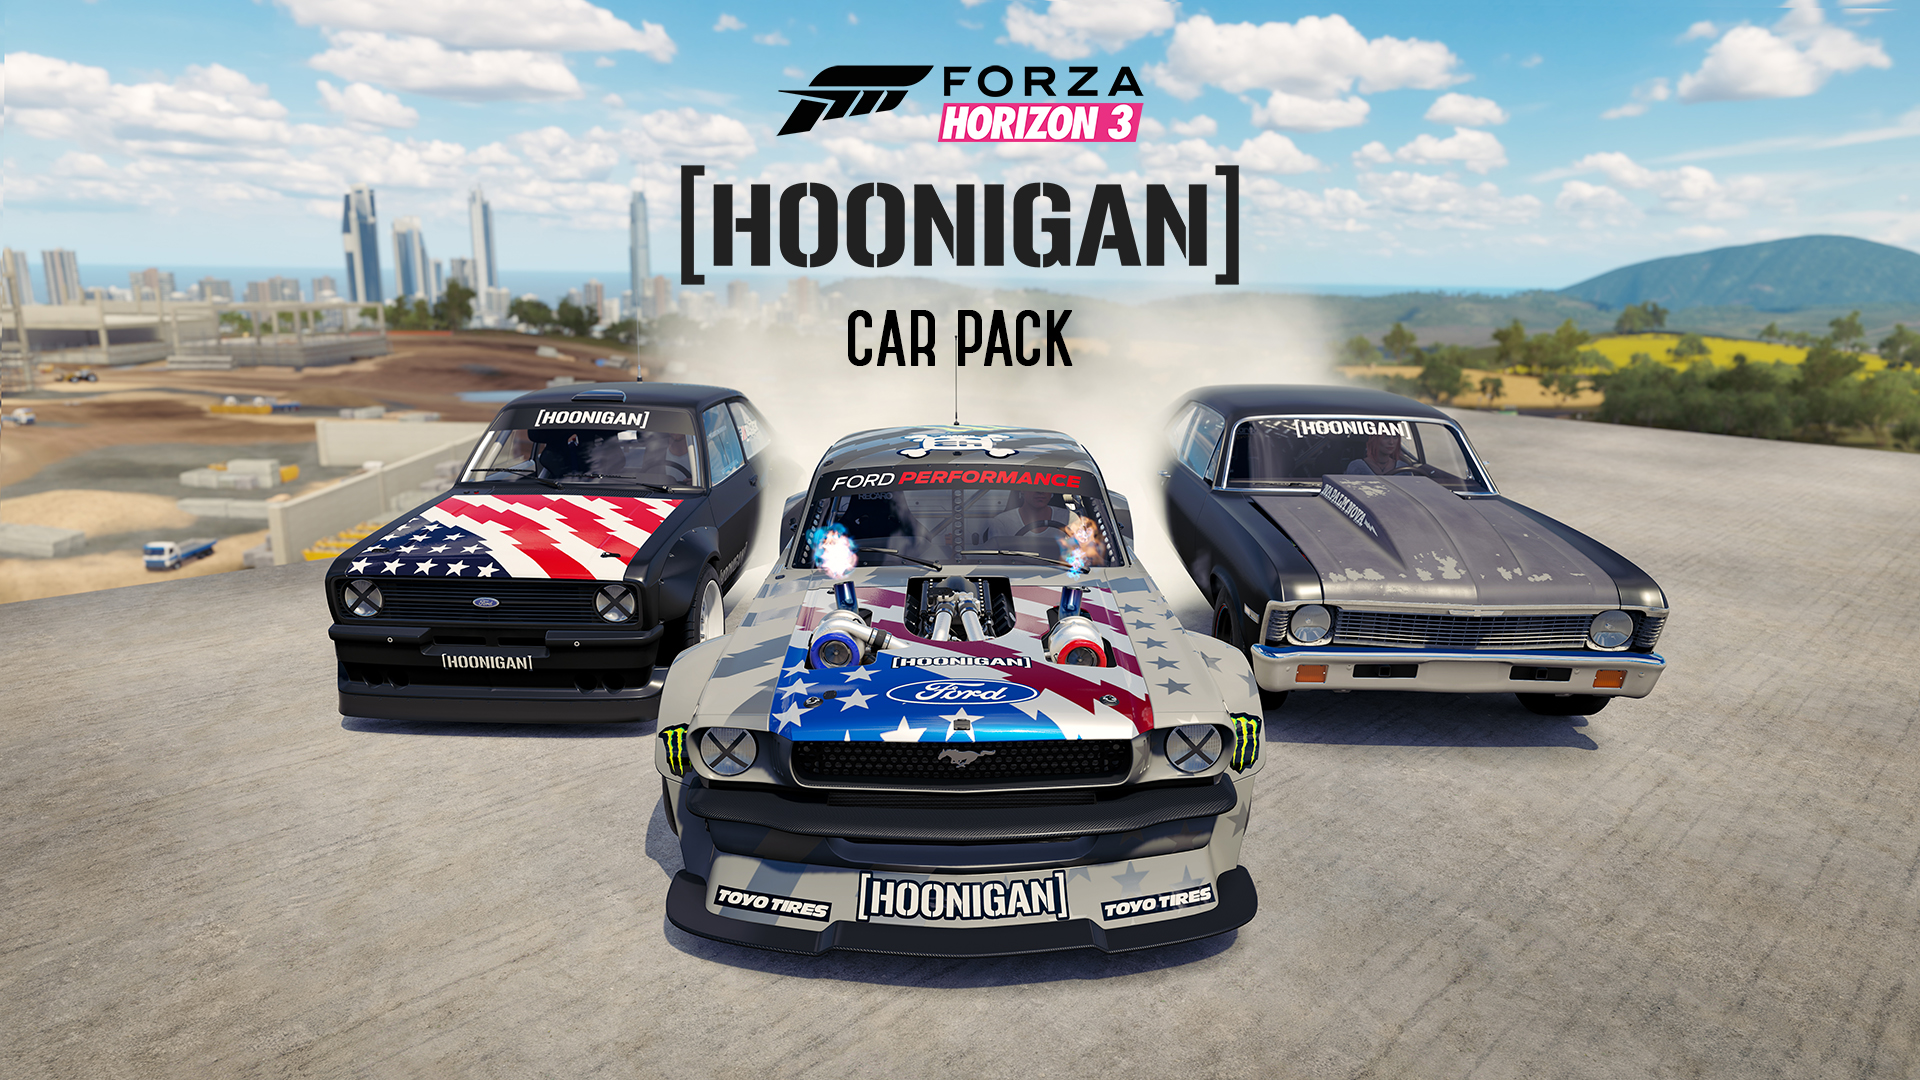 Hoonigan Car Packs announced for Forza Motorsport 7 and Forza Horizon 3